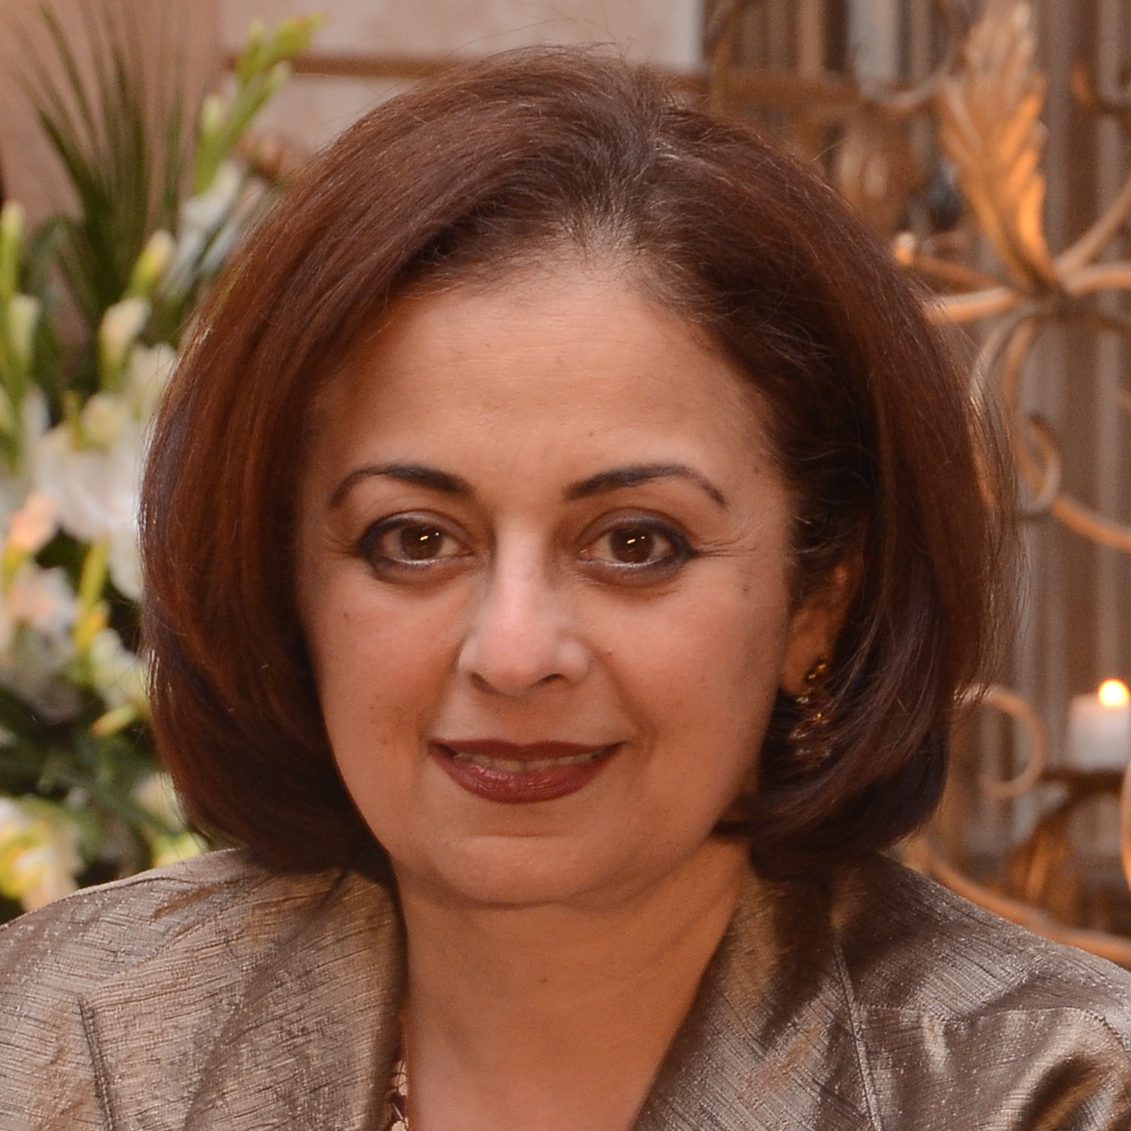 Shazia Z. Rafi   Joined 2016 - Alto 2   Shazia Z. Rafi is former Secretary-General of Parliamentarians for Global Action [1996-2013]; the first woman heading a parliamentary body. Born in Lahore, Pakistan, she graduated from Bryn Mawr College and the Fletcher School of Law and Diplomacy. Shazia 's website is  www.gpsdiplomacy.com